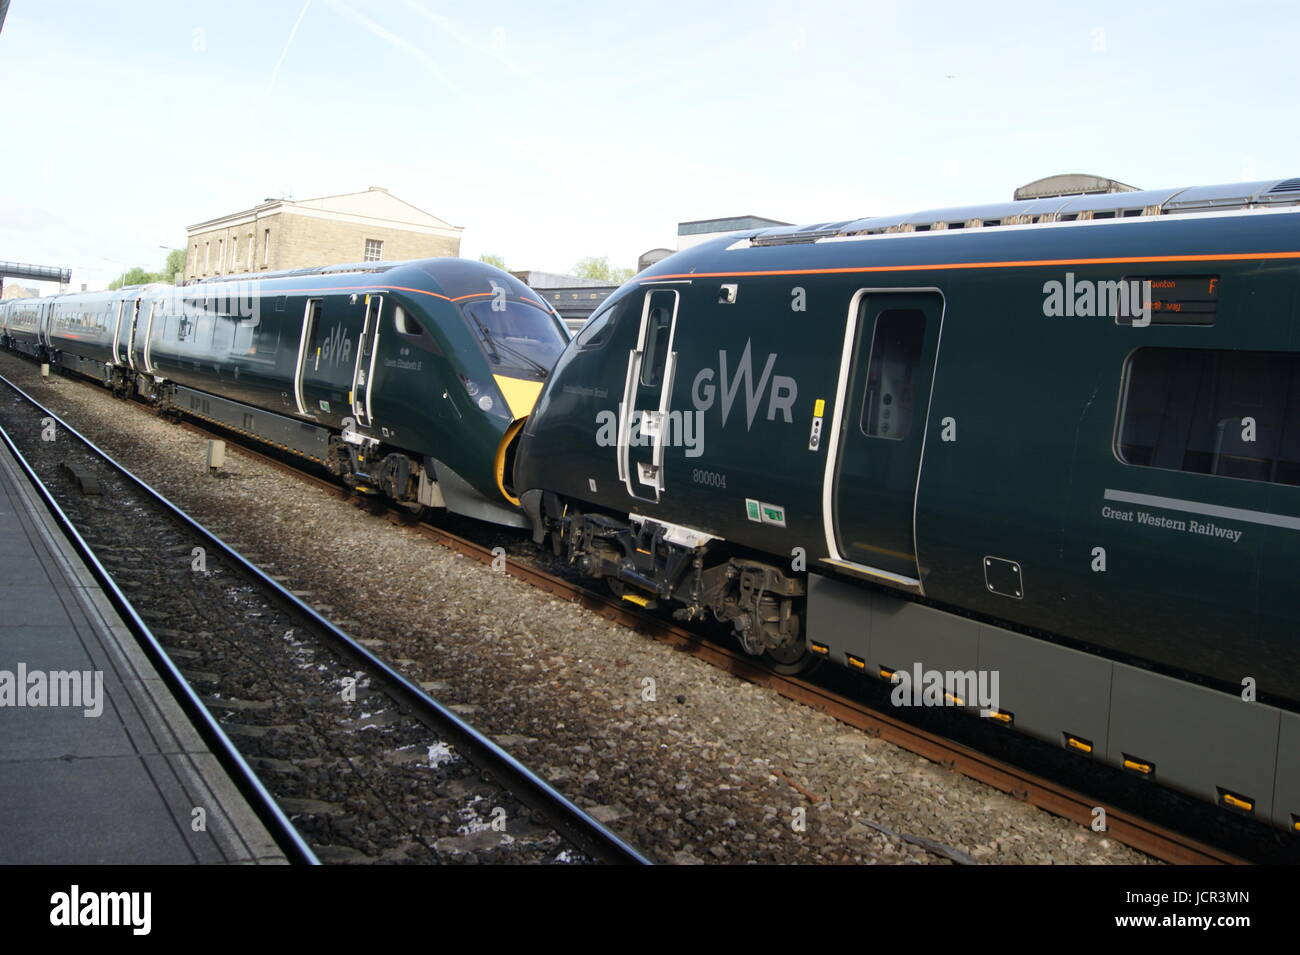 GWR liveried class 800 IET sits in Swindon station on a test run between London Paddington and Taunton on 16/06/2017. Stock Photo